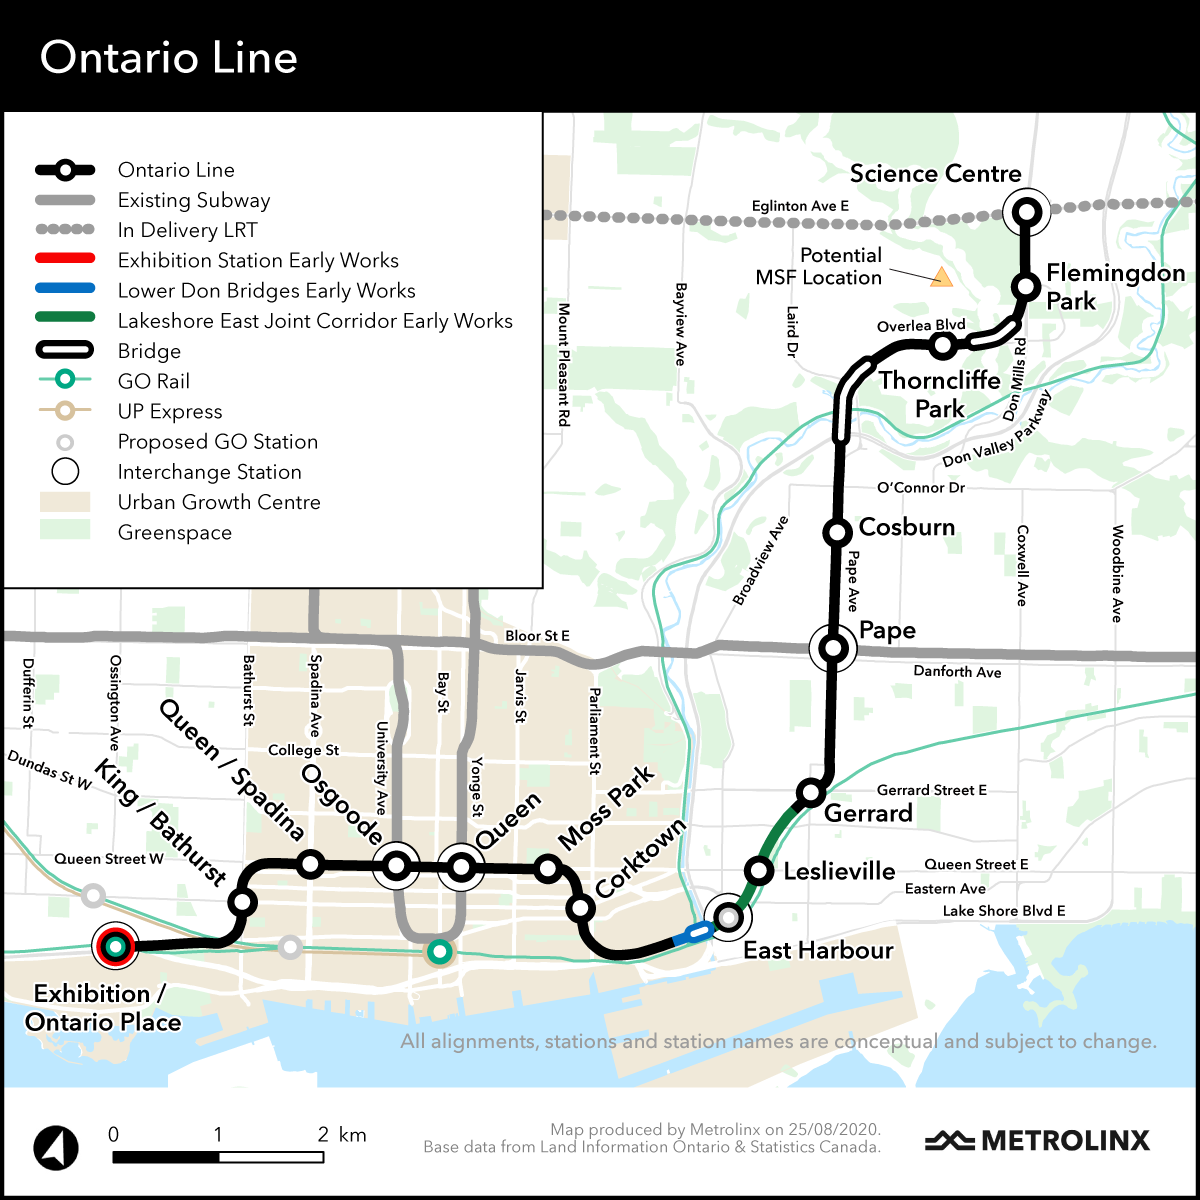 map of Ontario Line early works